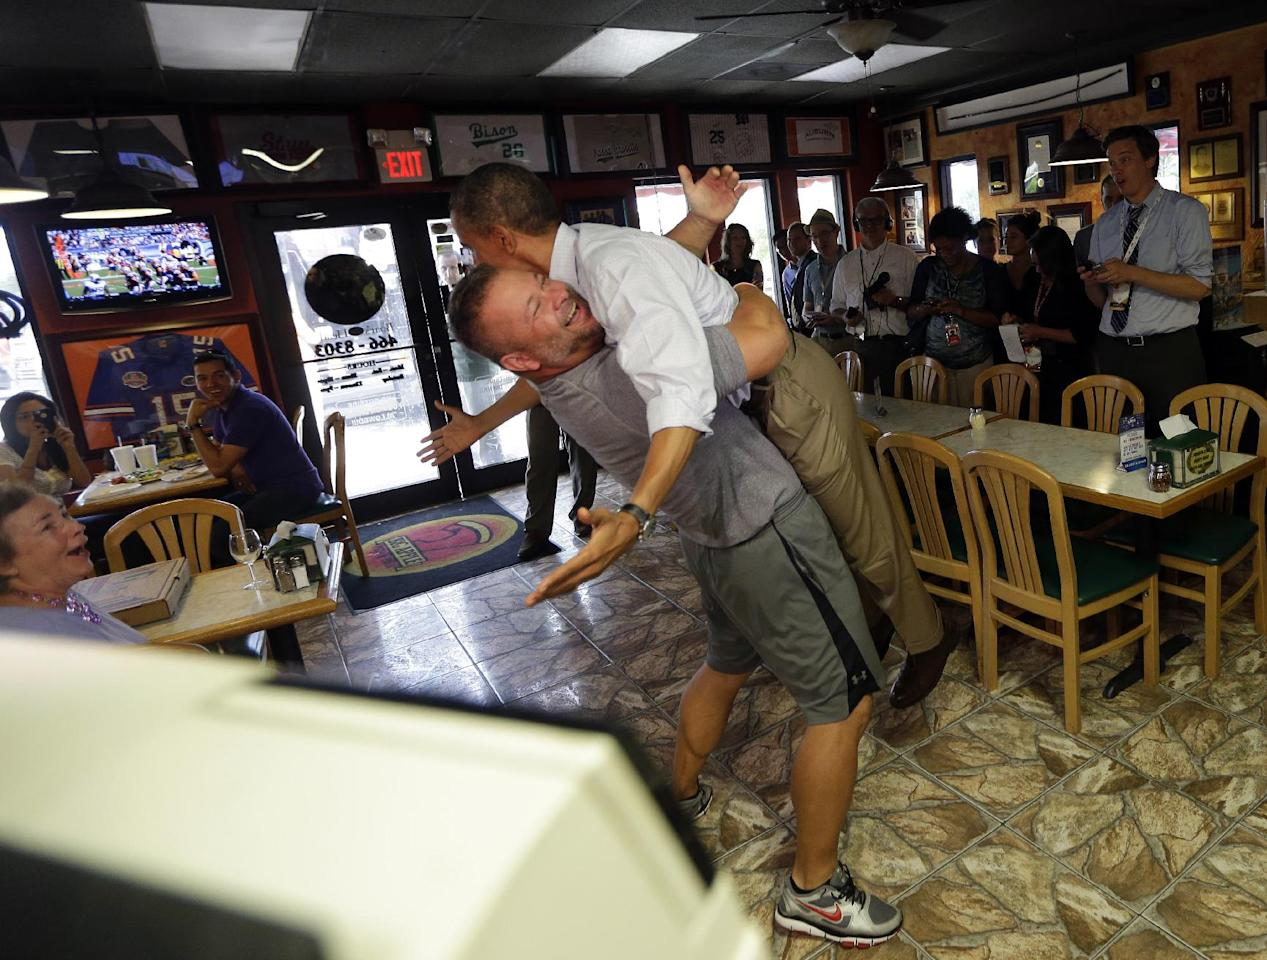 FILE - In this Sept. 9, 2012 file photo, President Barack Obama is picked-up and lifted off the ground by Scott Van Duzer, left, owner of Big Apple Pizza and Pasta Italian Restaurant during an unannounced stop in Ft. Pierce, Fla. Obama goes airborne in a doozie of a bear hug with a pizza guy in Florida. Joe Biden cozies up with a biker chick in Ohio. Even the more reserved Mitt Romney seems to be loosening up some with people he meets on the campaign trail. Kissing babies and slapping backs are so yesterday. The 2012 candidates are putting their all into the campaign cliche of pressing the flesh. (AP Photo/Pablo Martinez Monsivais, File)